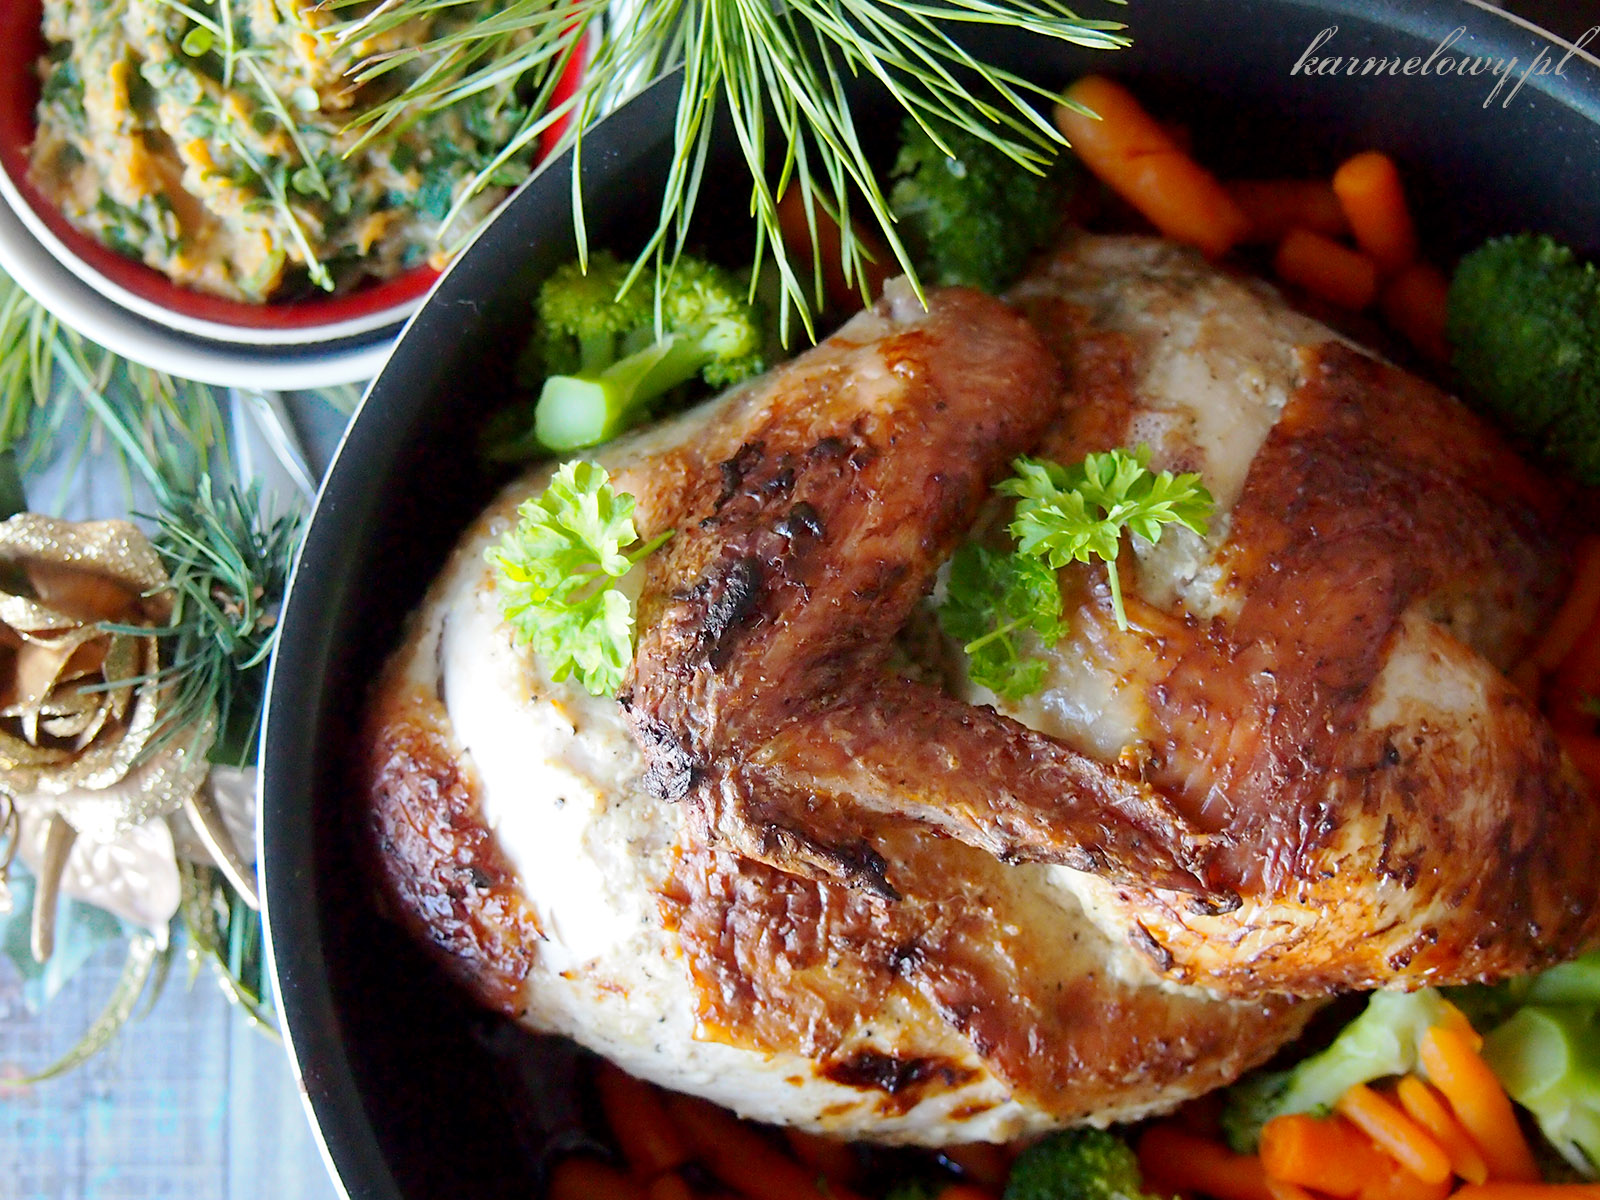 ... /Roasted chicken with cardamom and yogurt - Karmelowy blog kulinarny